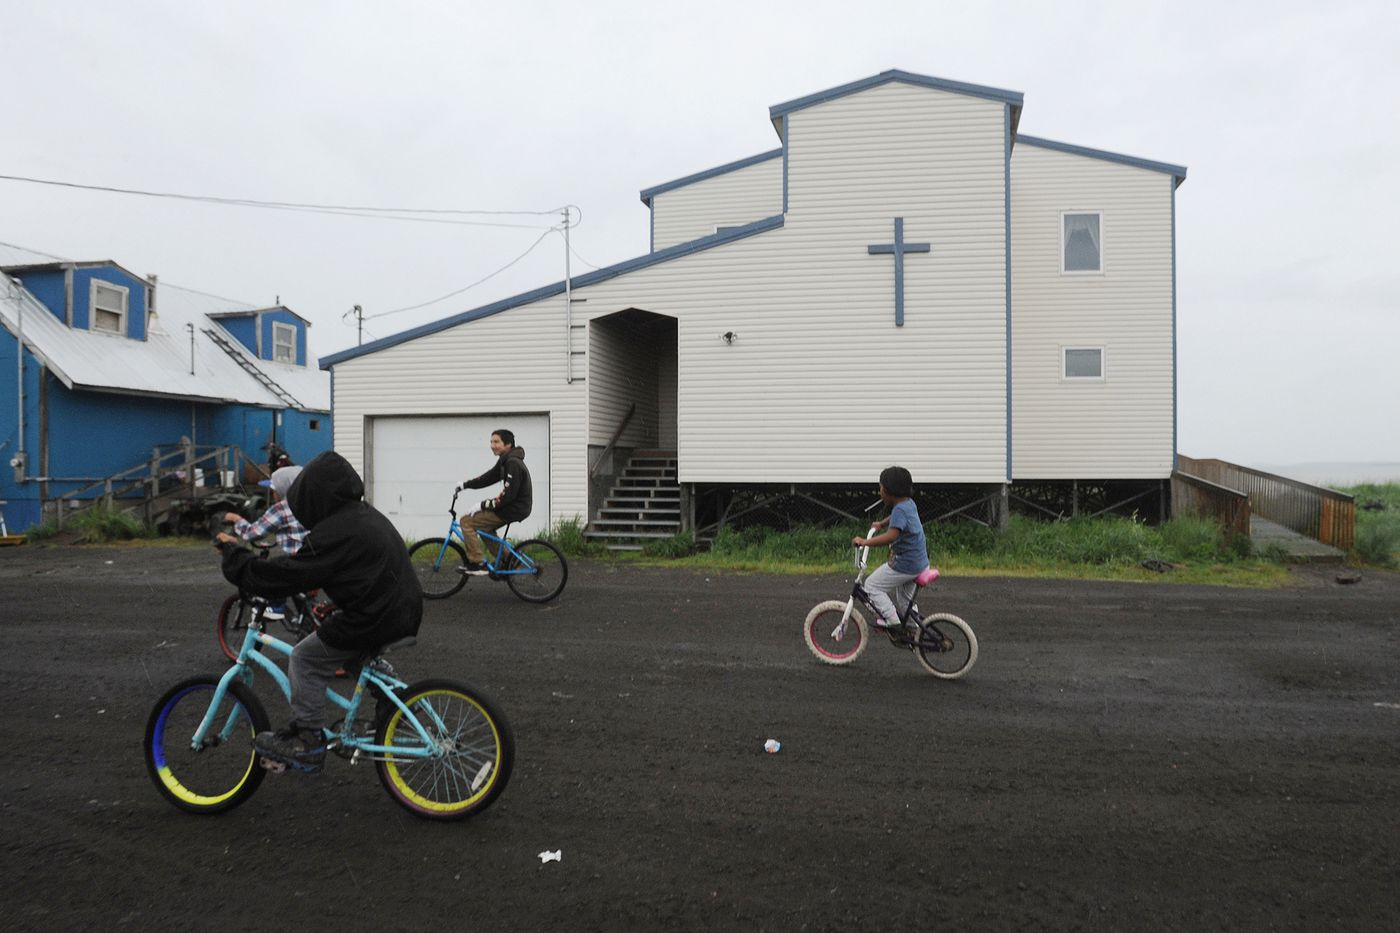 Children ride past the Catholic church in the village of Stebbins on the Norton Sound coast in Western Alaska on Wednesday, June 26, 2019. The old church where the sexual abuse of children occurred in the 1960's was torn down and replaced with this church. (Bill Roth / ADN)